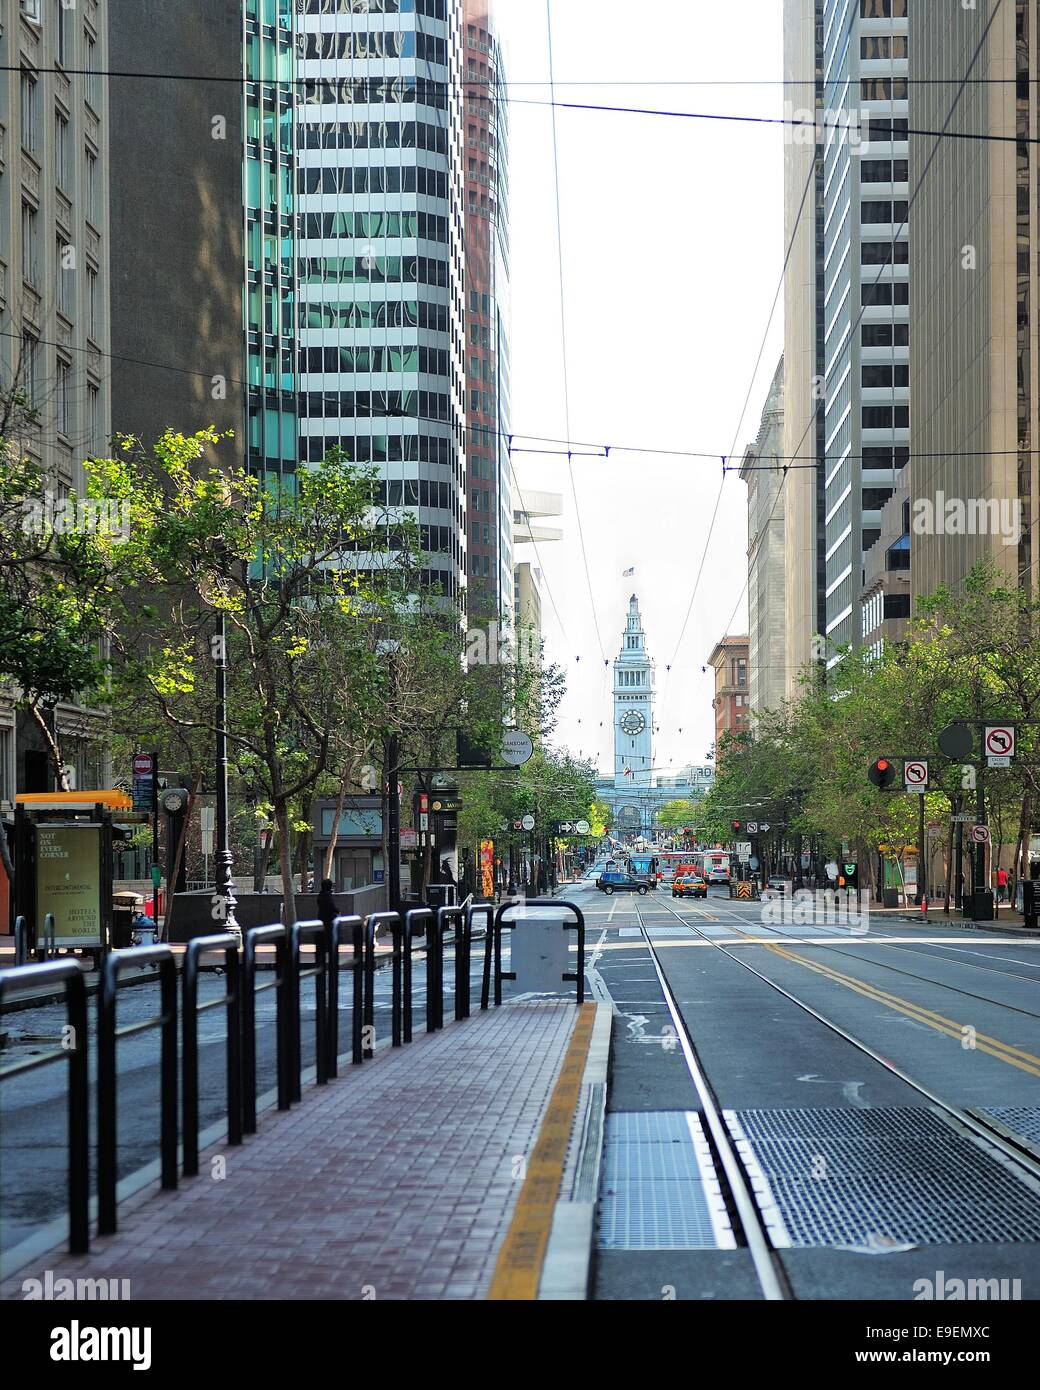 Light rail tracks in san francisco stock photo 74697124 alamy light rail tracks in san francisco aloadofball Images